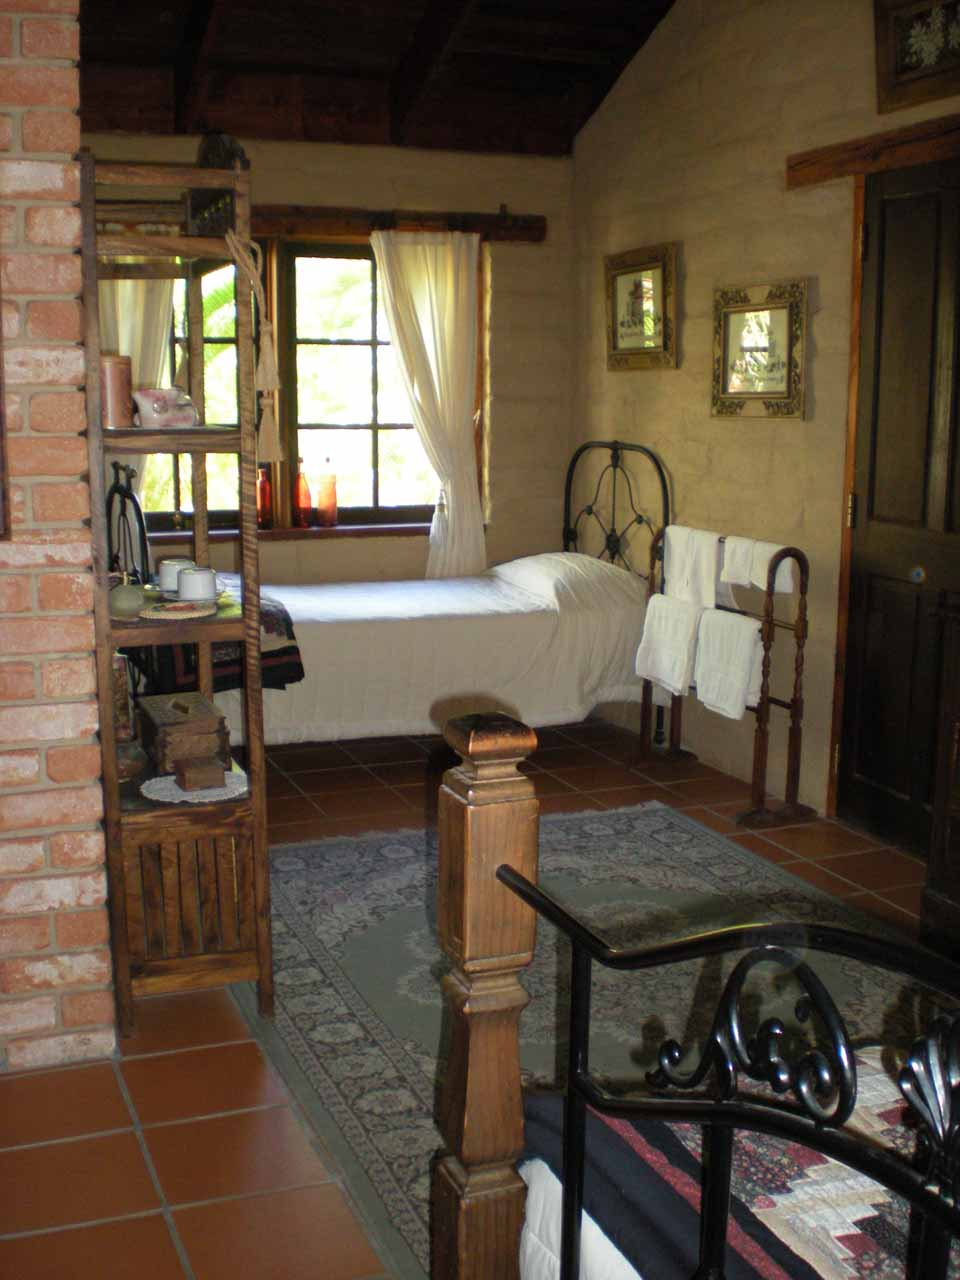 Room 2 at the Mudbrick Manor